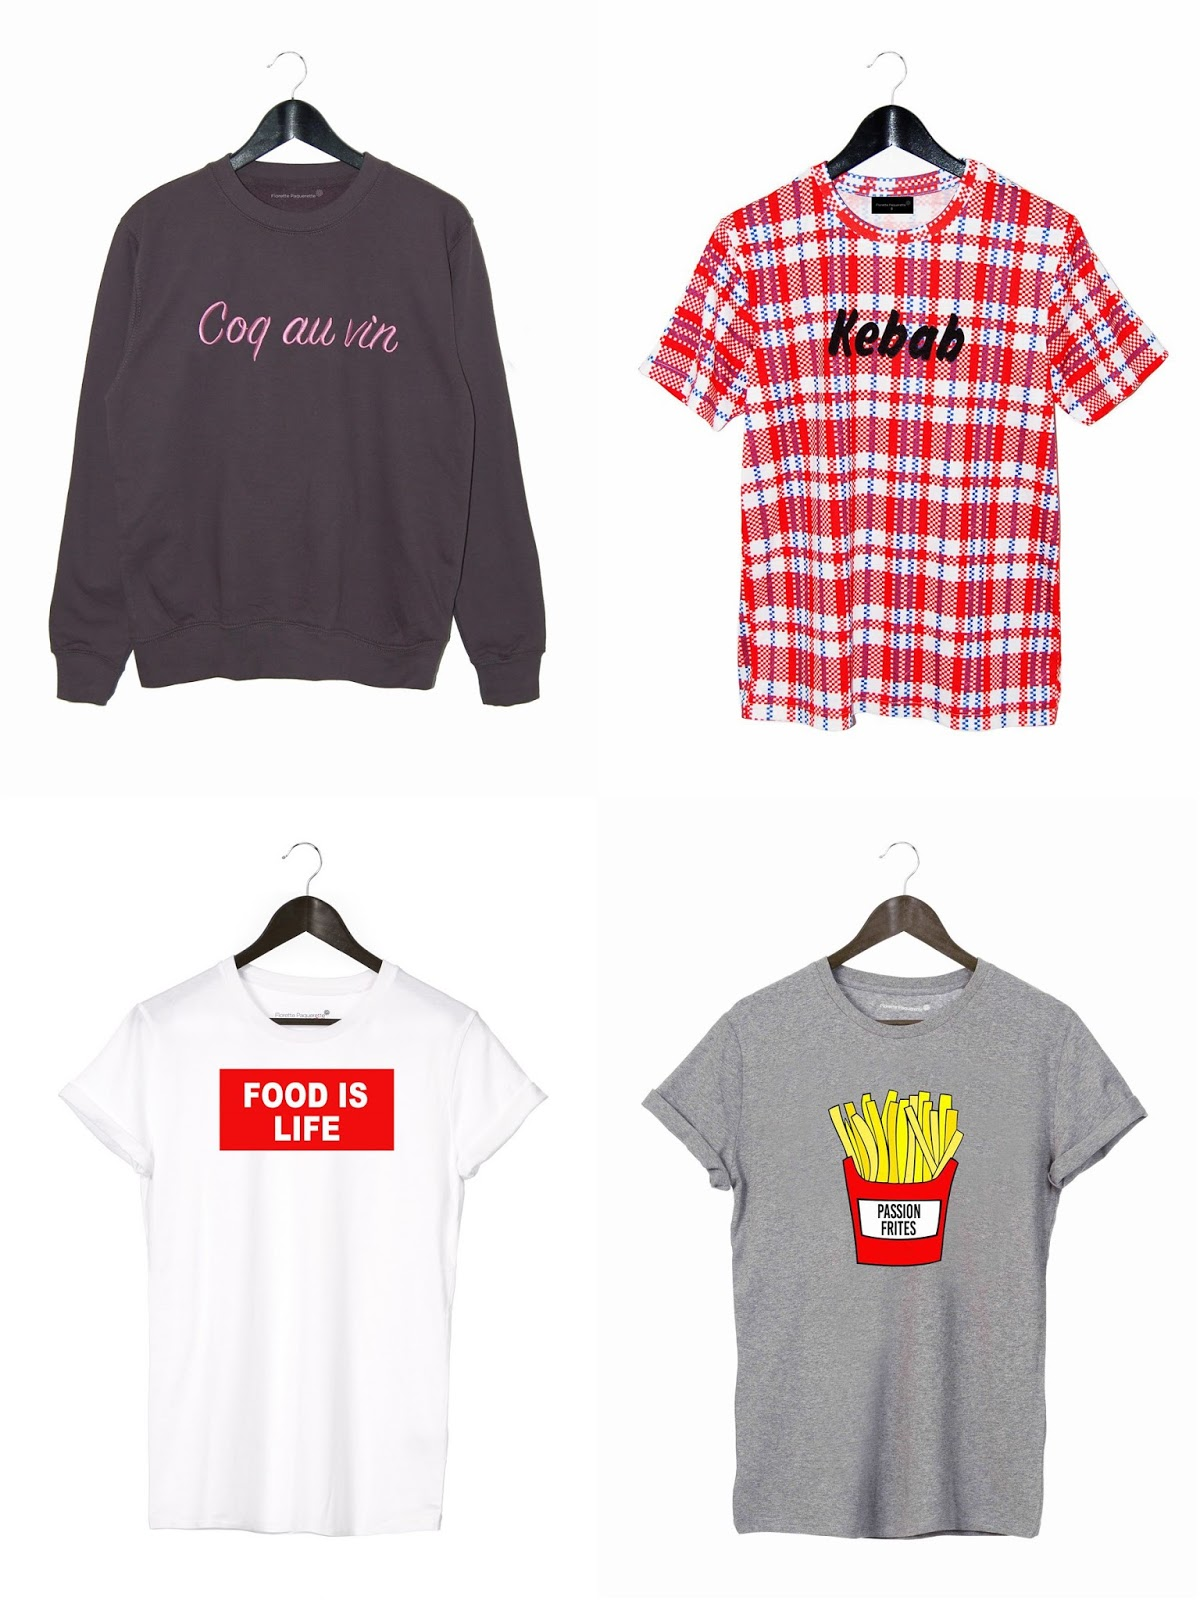 food-is-life, florette-paquerette, life-motto, tee-shirt-fun, t-shirt-fun, tee-shirt-florette-paquerette, tee-shirt-original, t-shirt-original, sweat-florette-paquerette, sweat-fun, sweat-original, kebab-lover, foodista, du-dessin-aux-podiums, dudessinauxpodiums